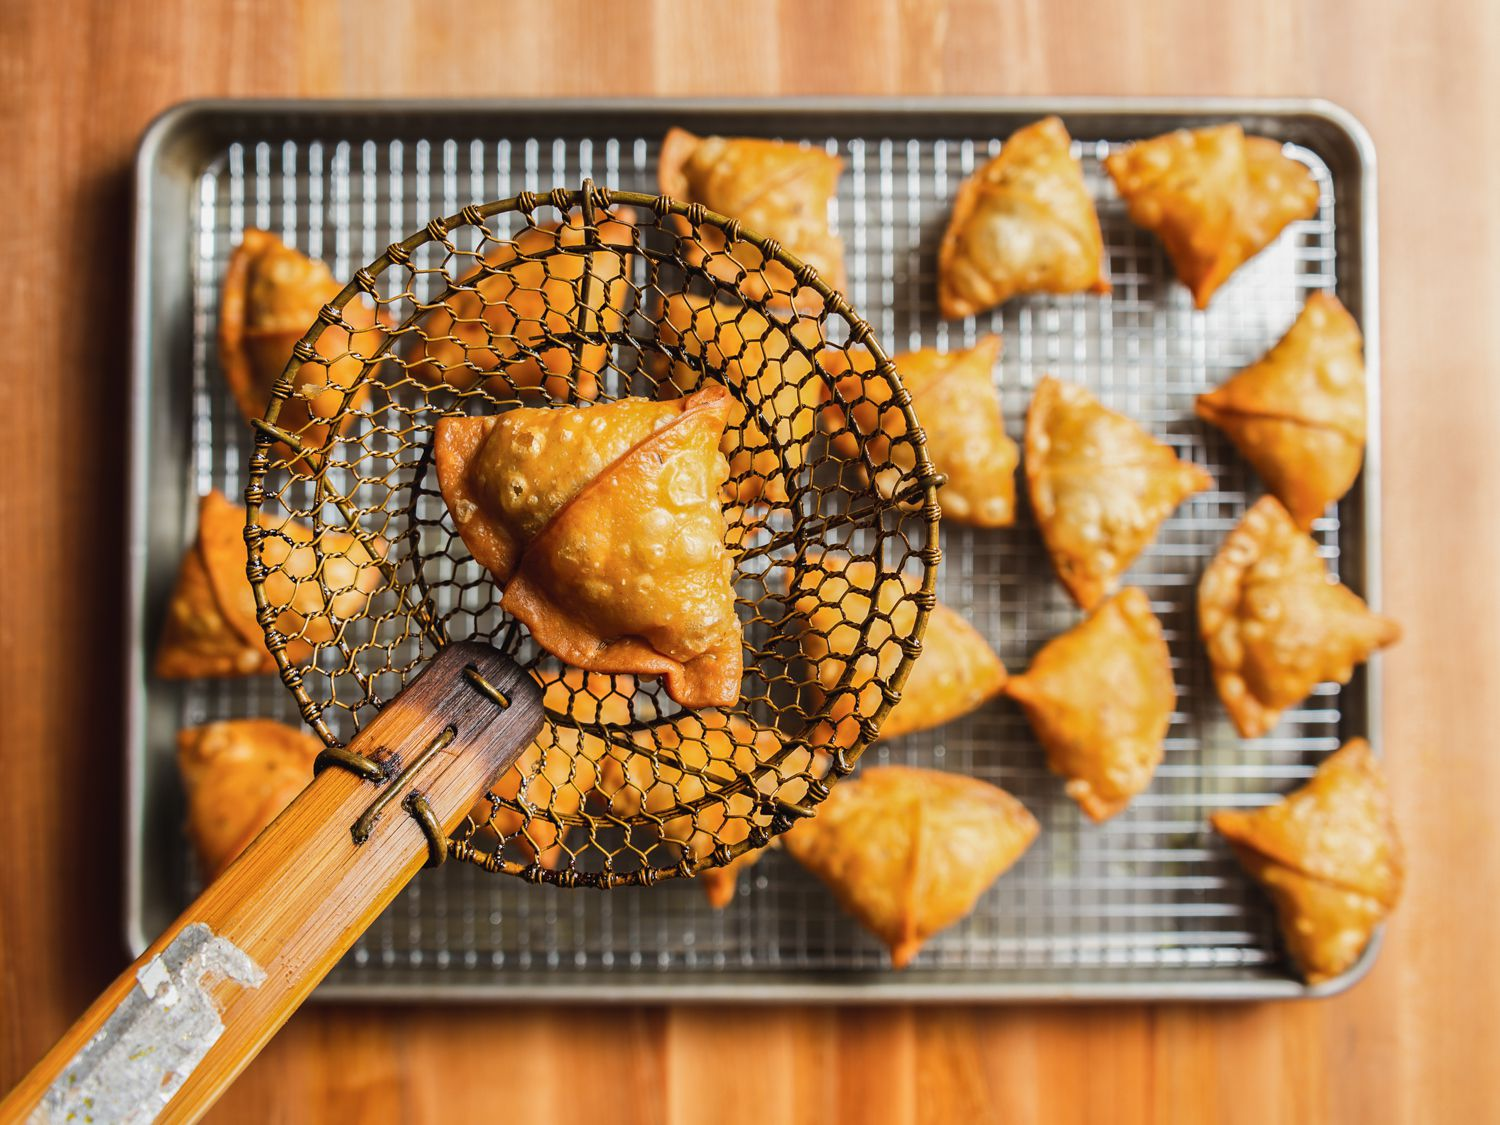 Fried samosa in a spider strainer held aloft a rimmed baking sheet with a wire rack set into it with samosas cooling on top